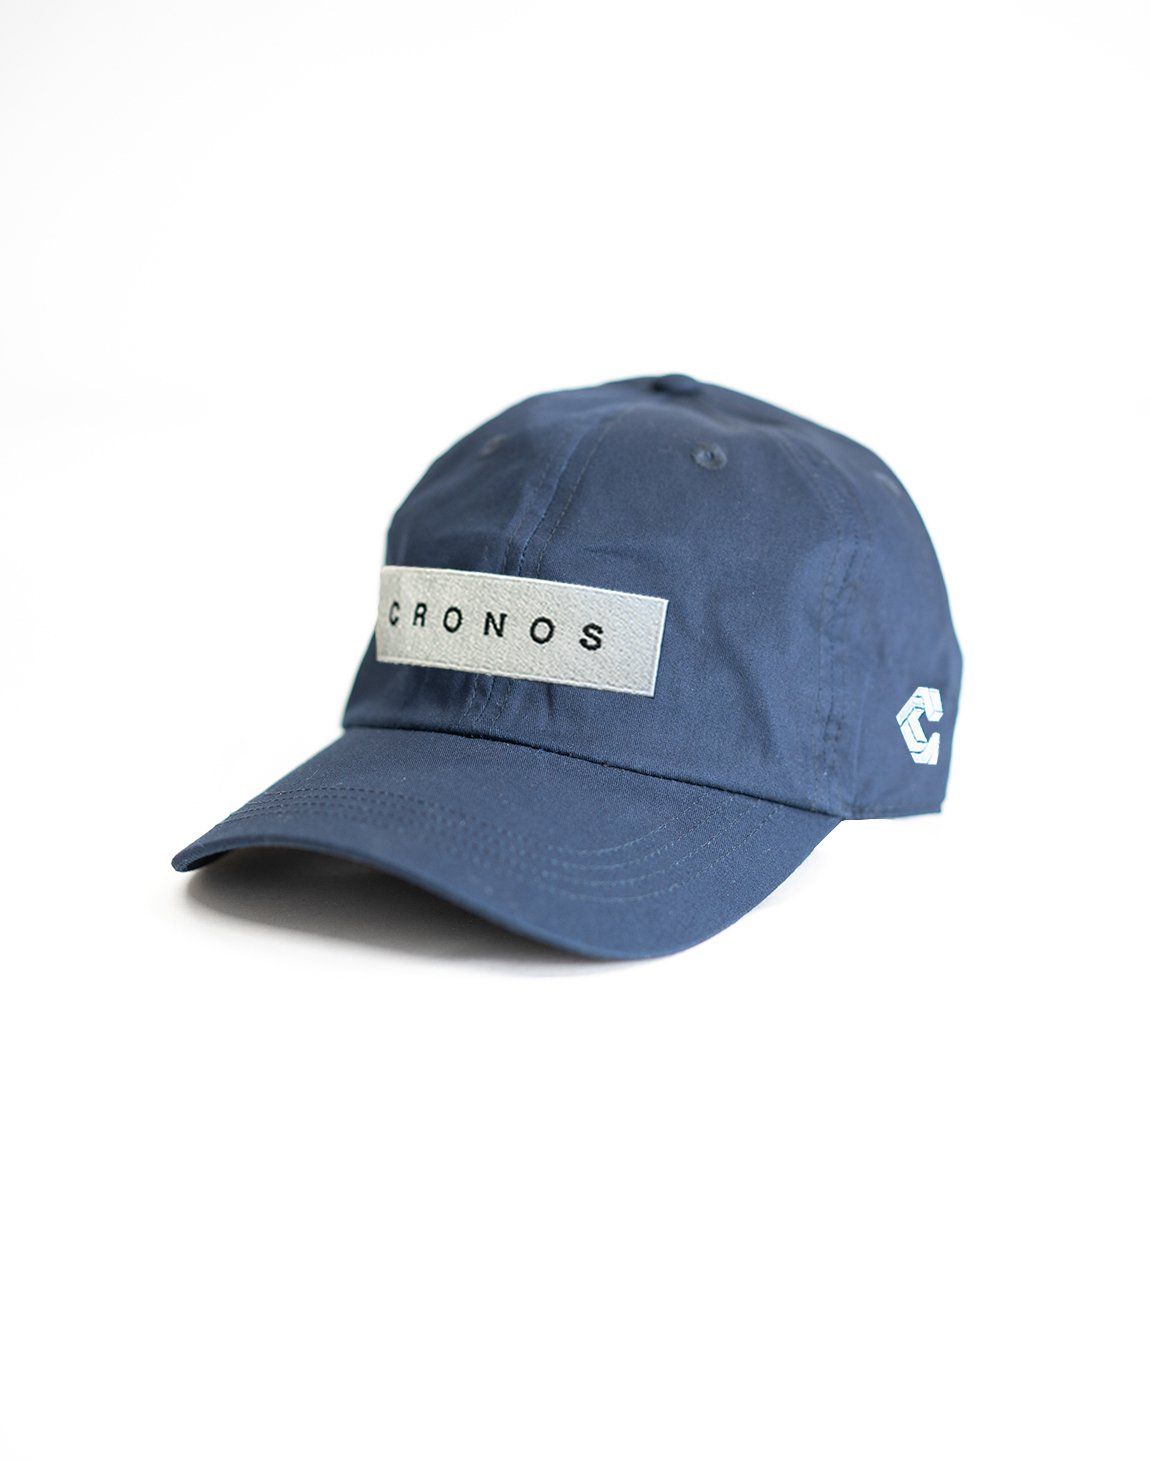 <img class='new_mark_img1' src='https://img.shop-pro.jp/img/new/icons1.gif' style='border:none;display:inline;margin:0px;padding:0px;width:auto;' />CRONOS BOX LOGO CAP 【NAVY】